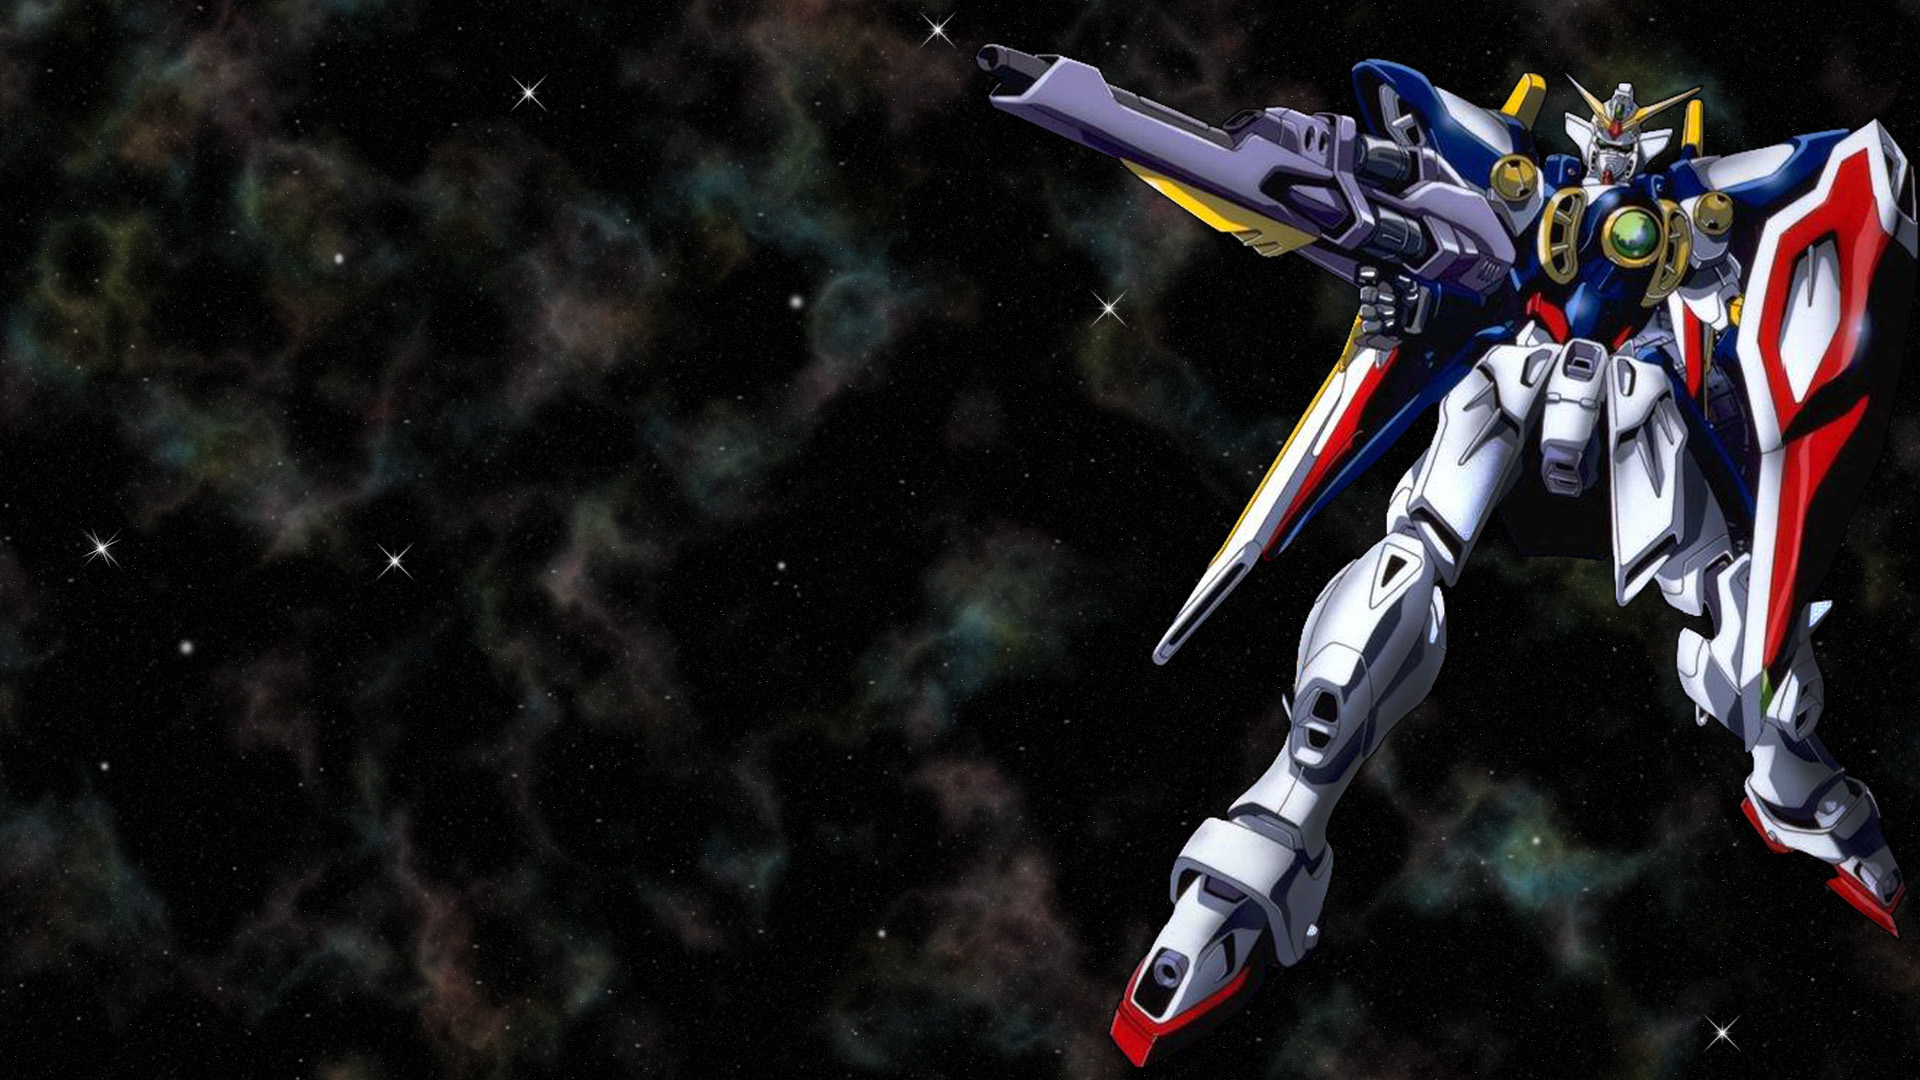 viciouscomputerscomWallpapersgundam red 1920x1080jpg 1920x1080